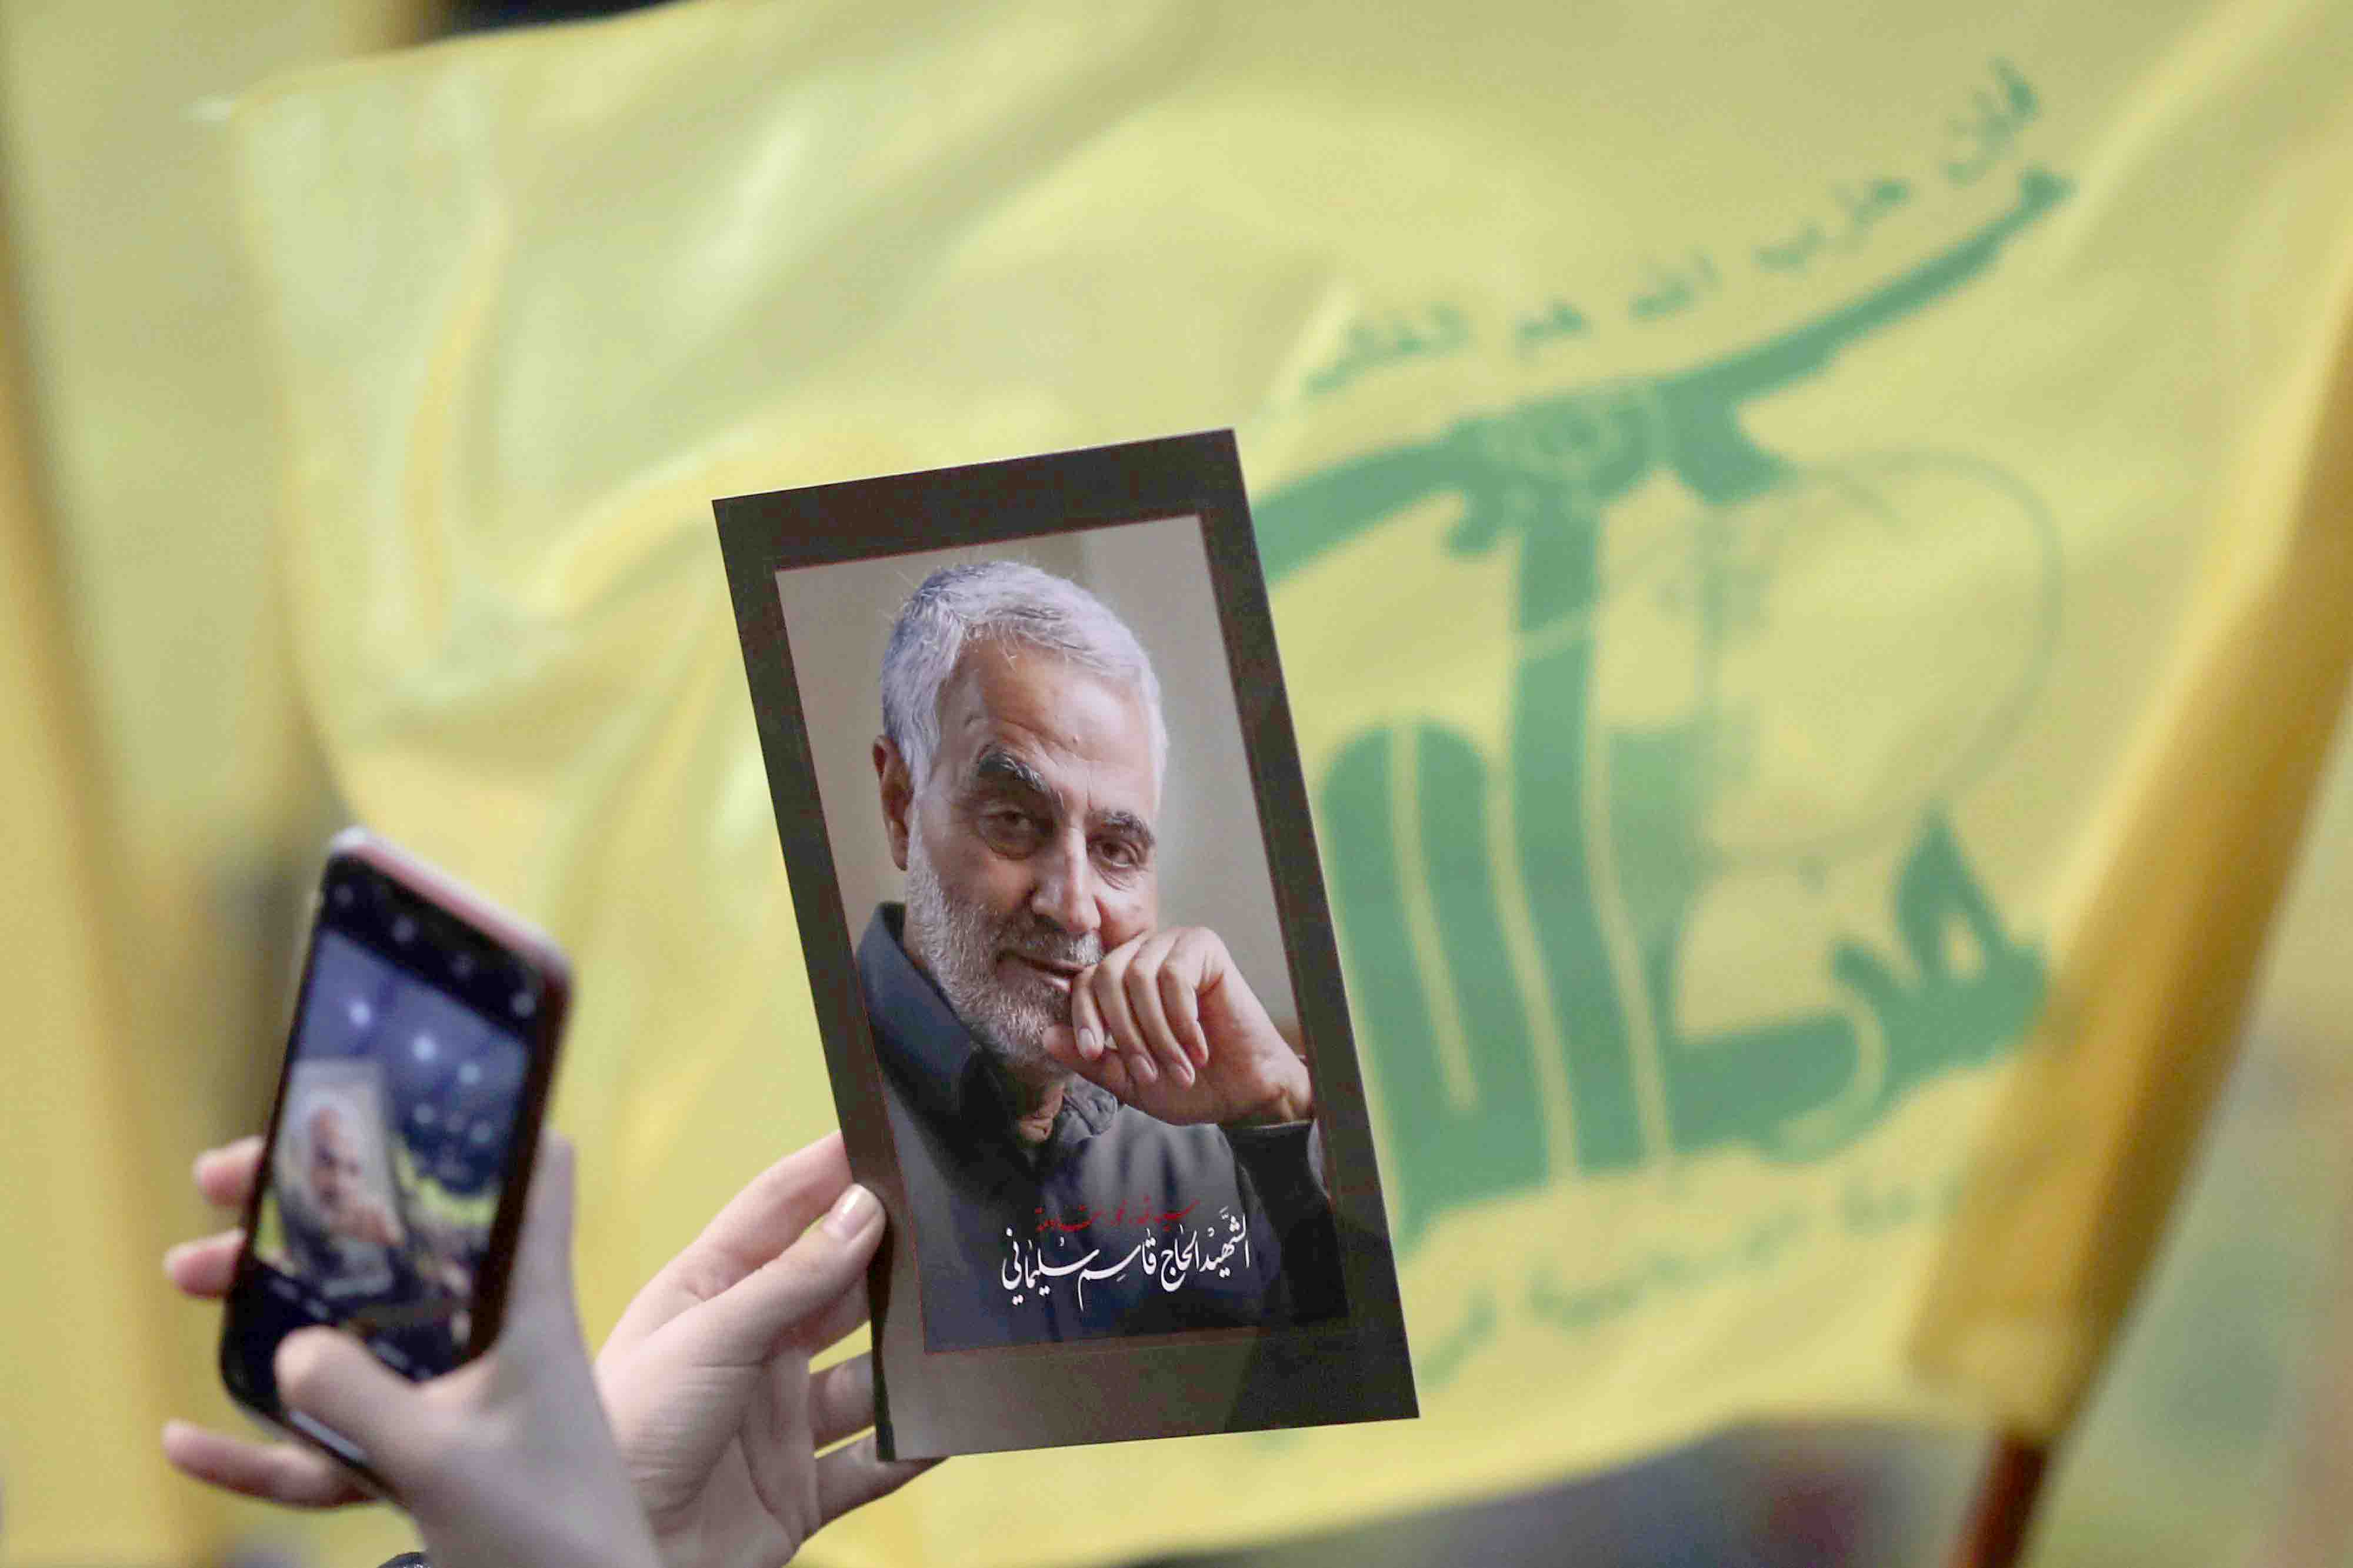 A Hezbollah supporter uses her mobile phone to take a picture of photo of slain Islamic Revolutionary Guard Corps' Major-General Qassem Soleimani during a ceremony in the southern suburb of Beirut, February 16. (AP)